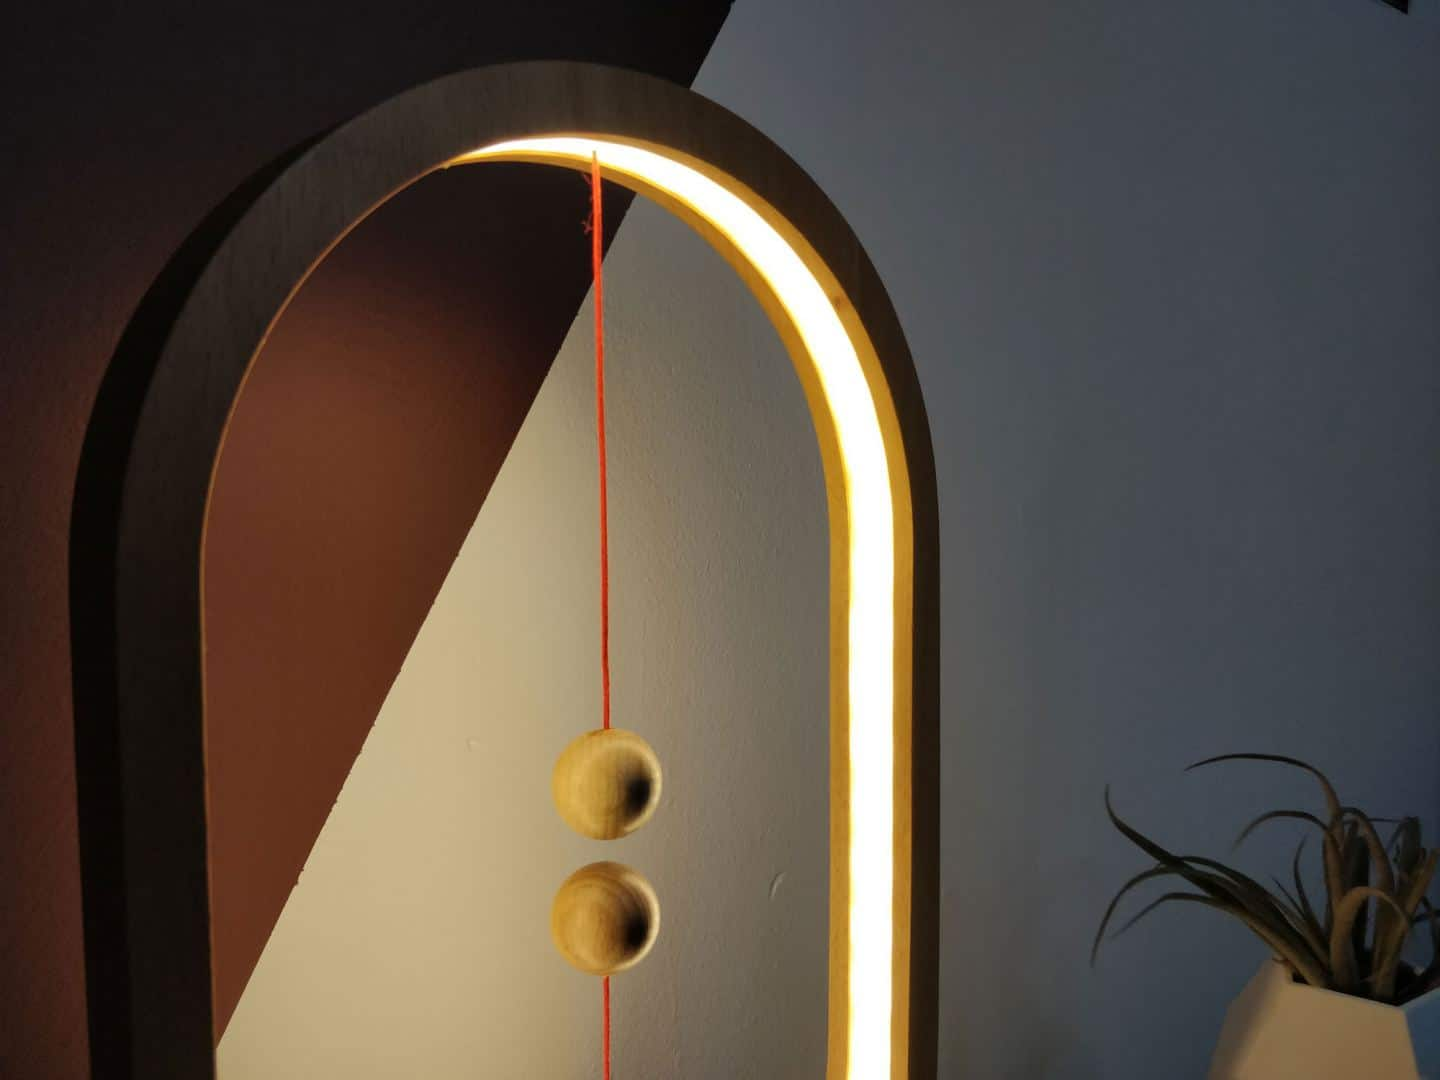 Close up of the Heng Balance Lamp by Enso & Paris